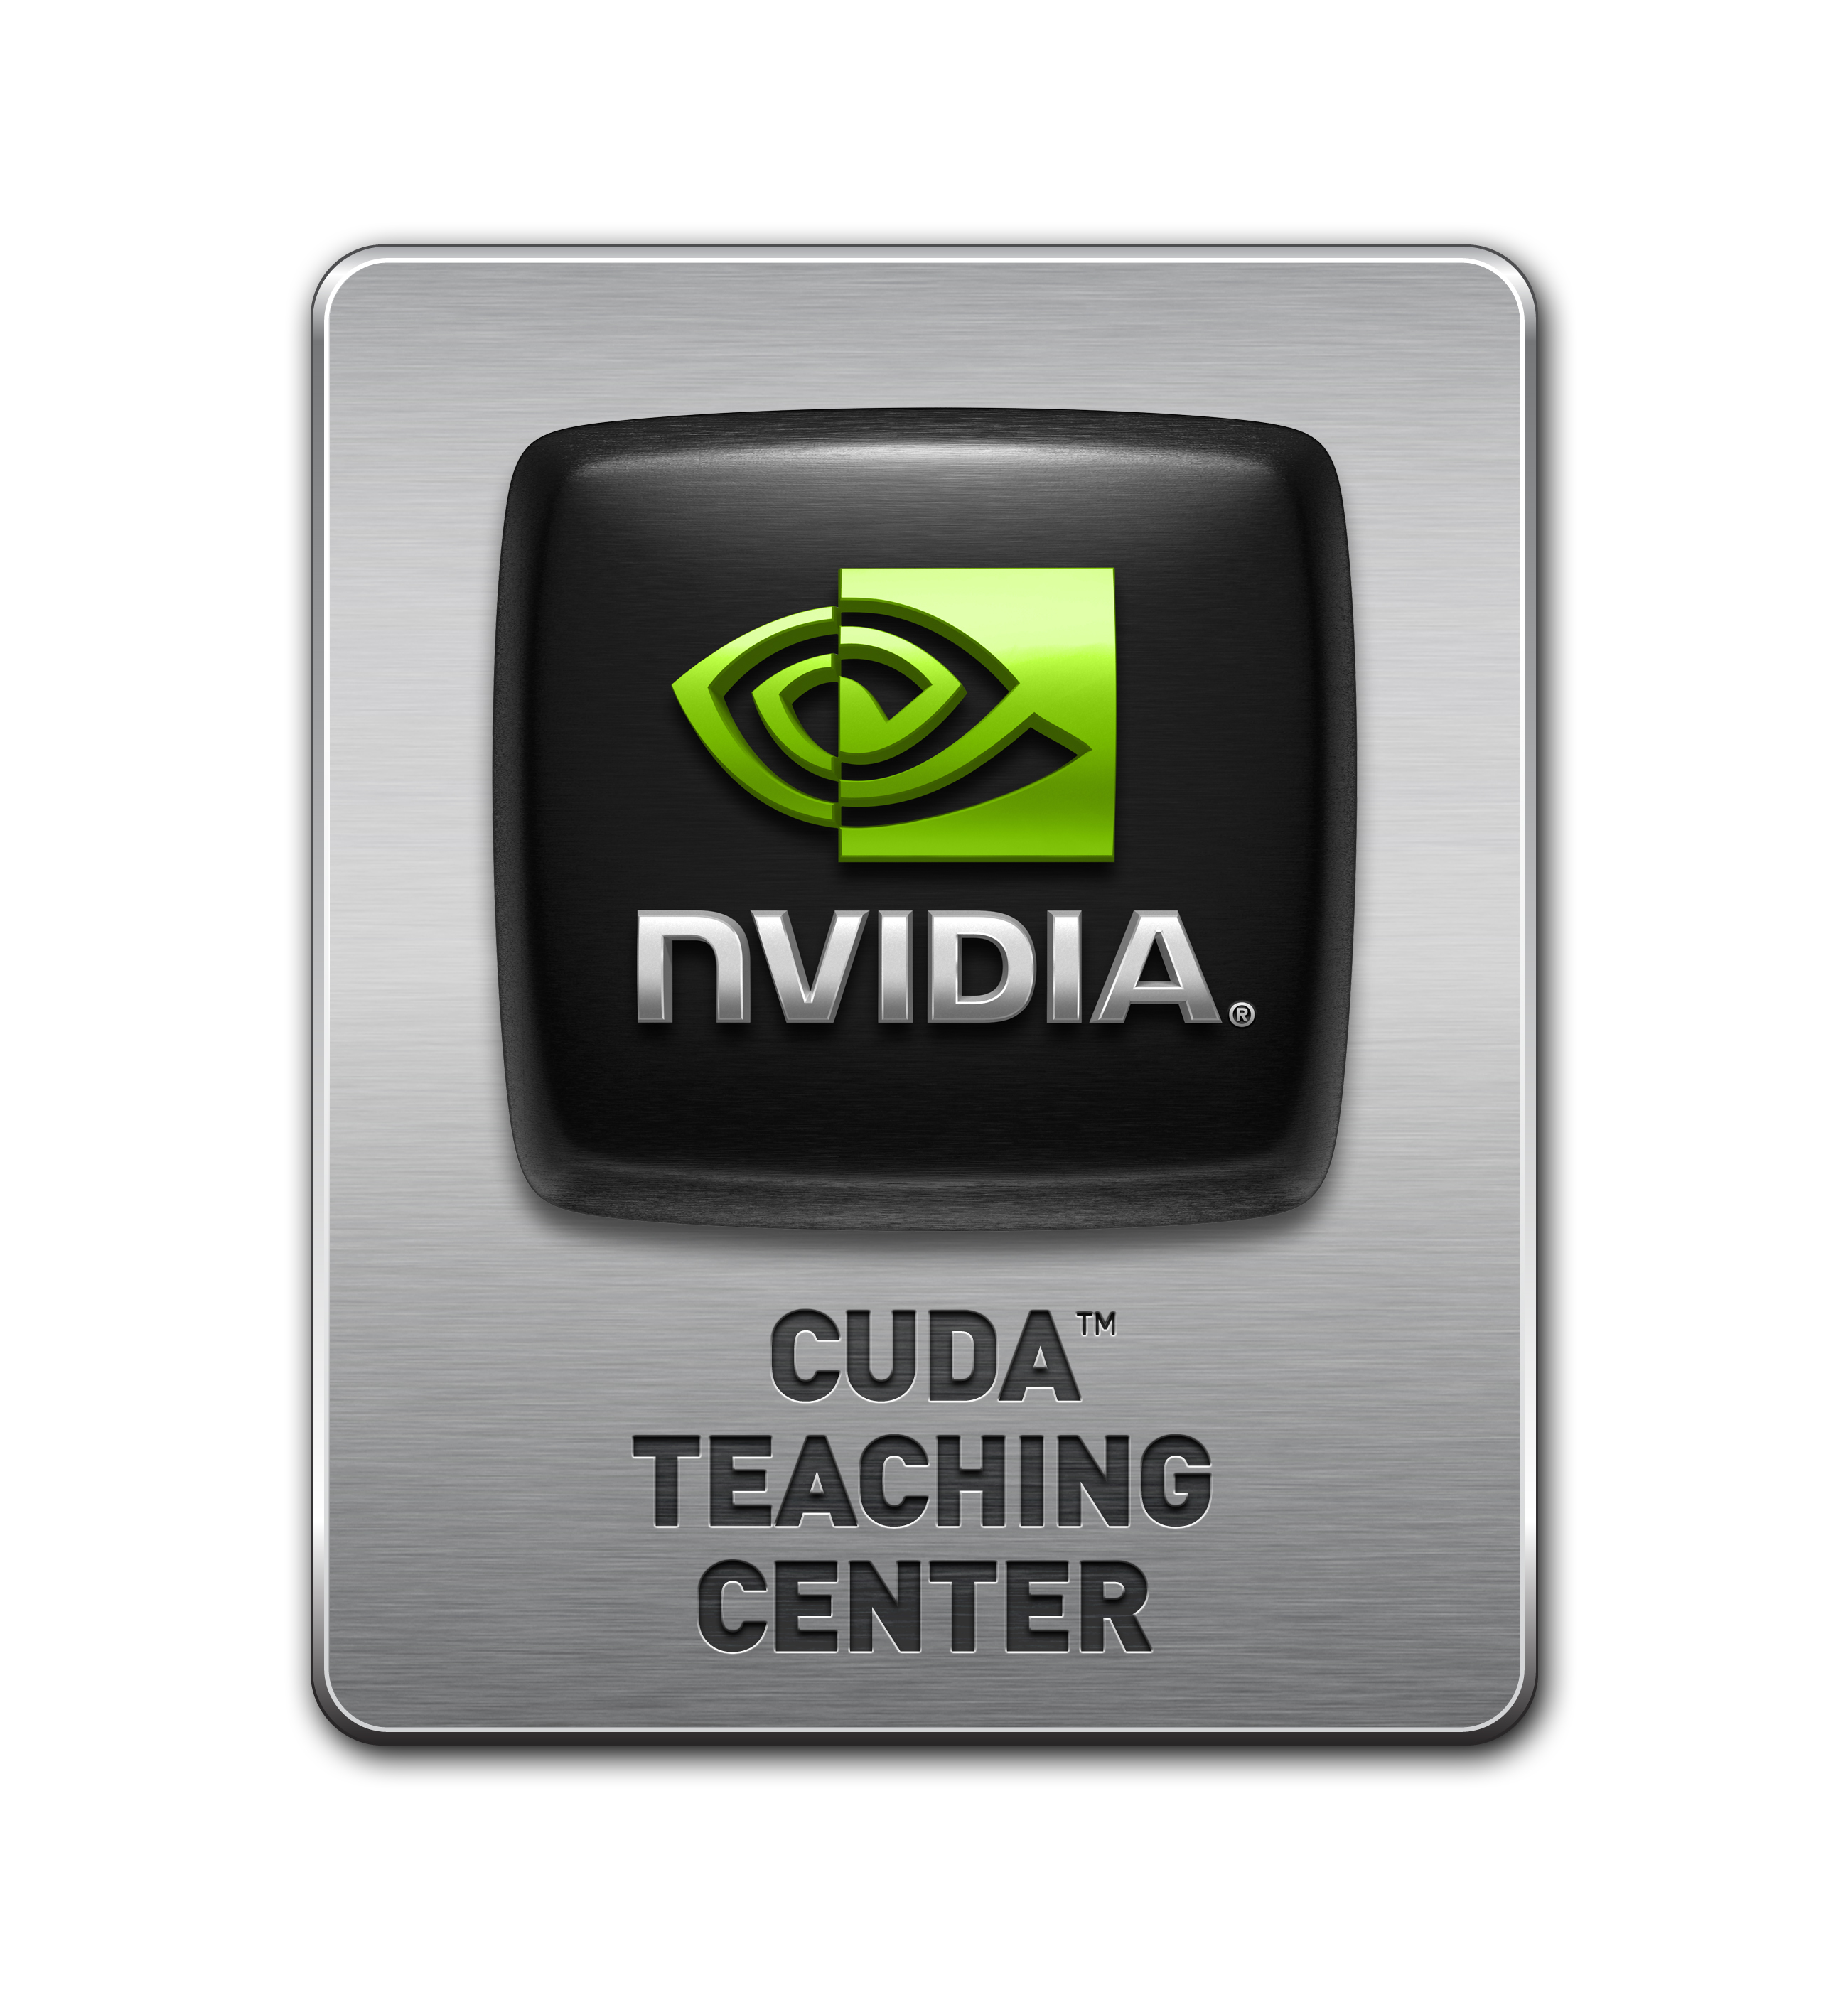 CUDA teaching center